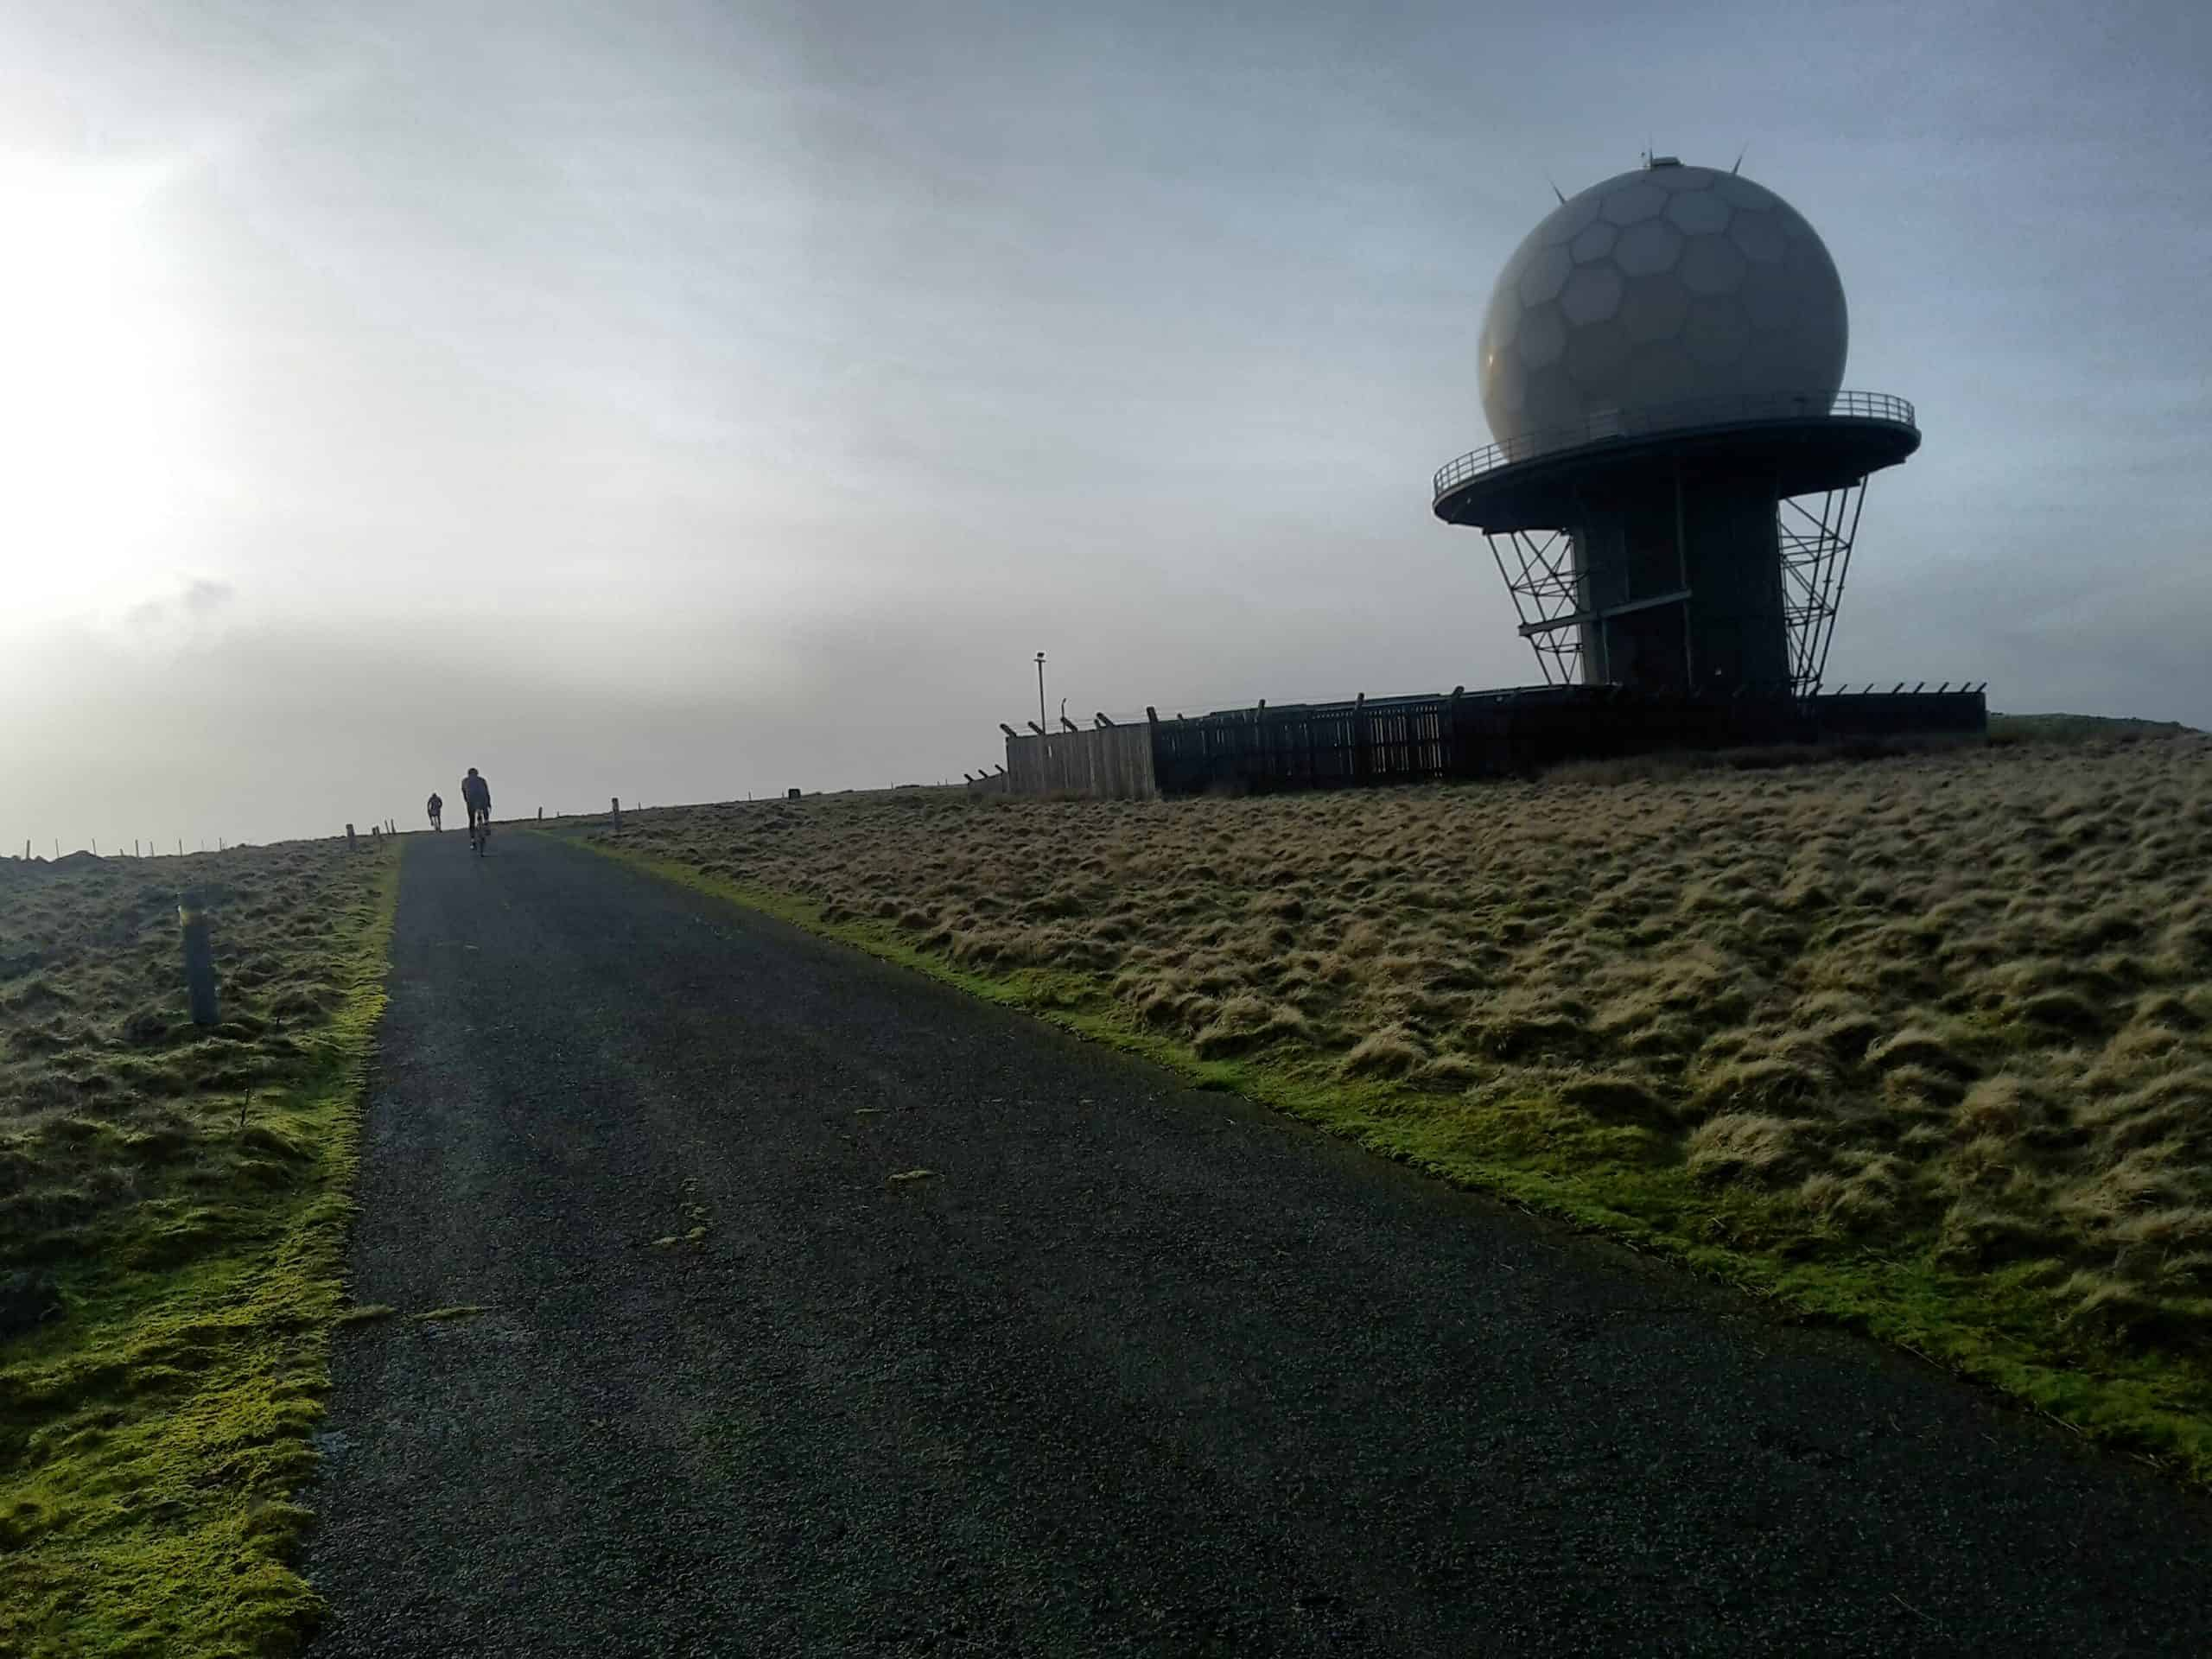 Summit 'bout Titterstone Clee 300